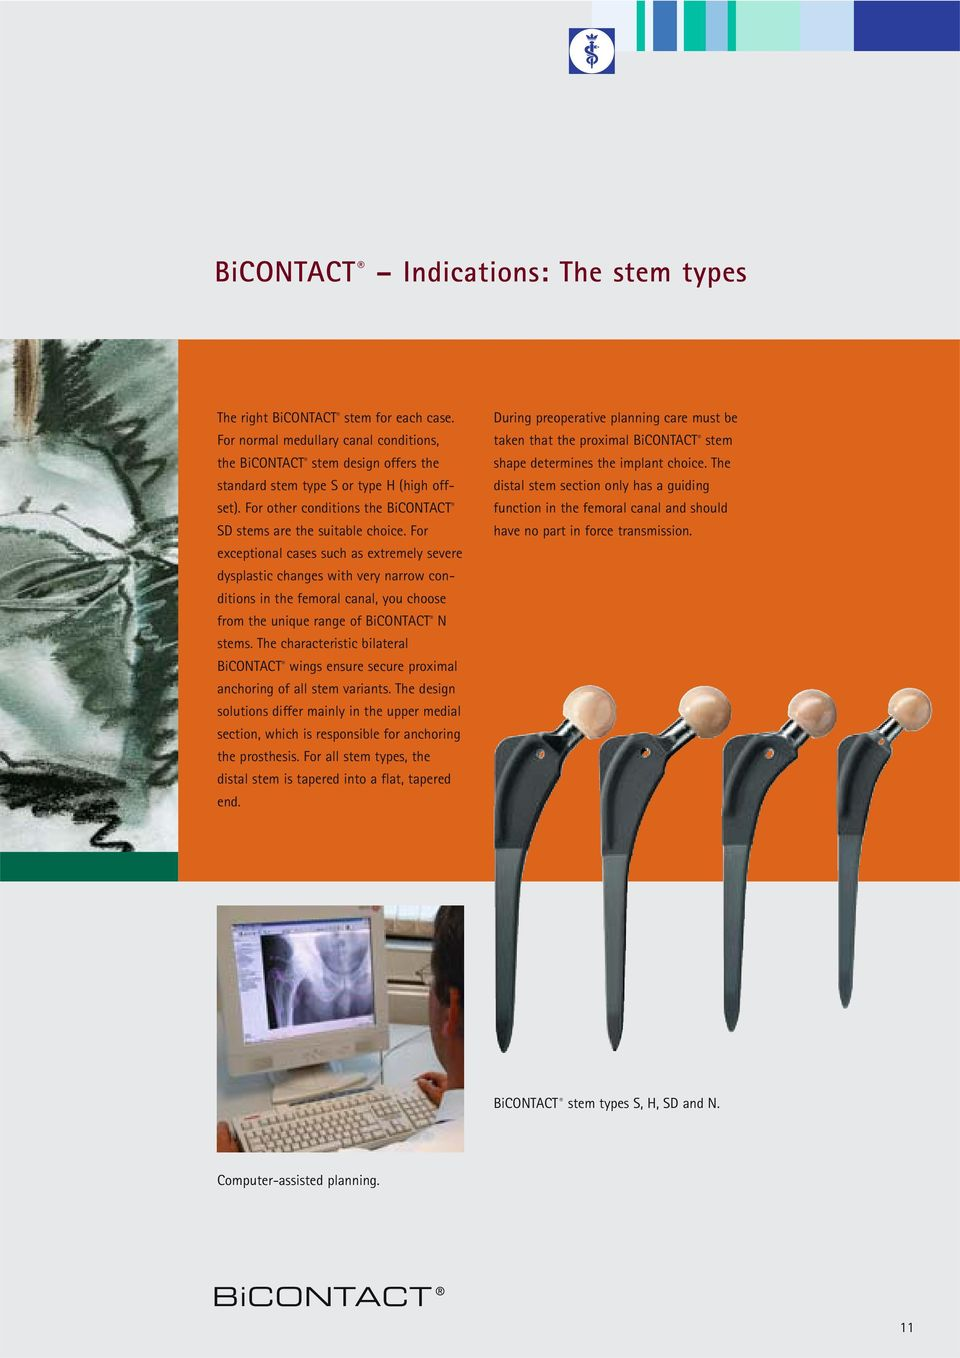 For exceptional cases such as extremely severe dysplastic changes with very narrow conditions in the femoral canal, you choose from the unique range of BiCONTACT N stems.